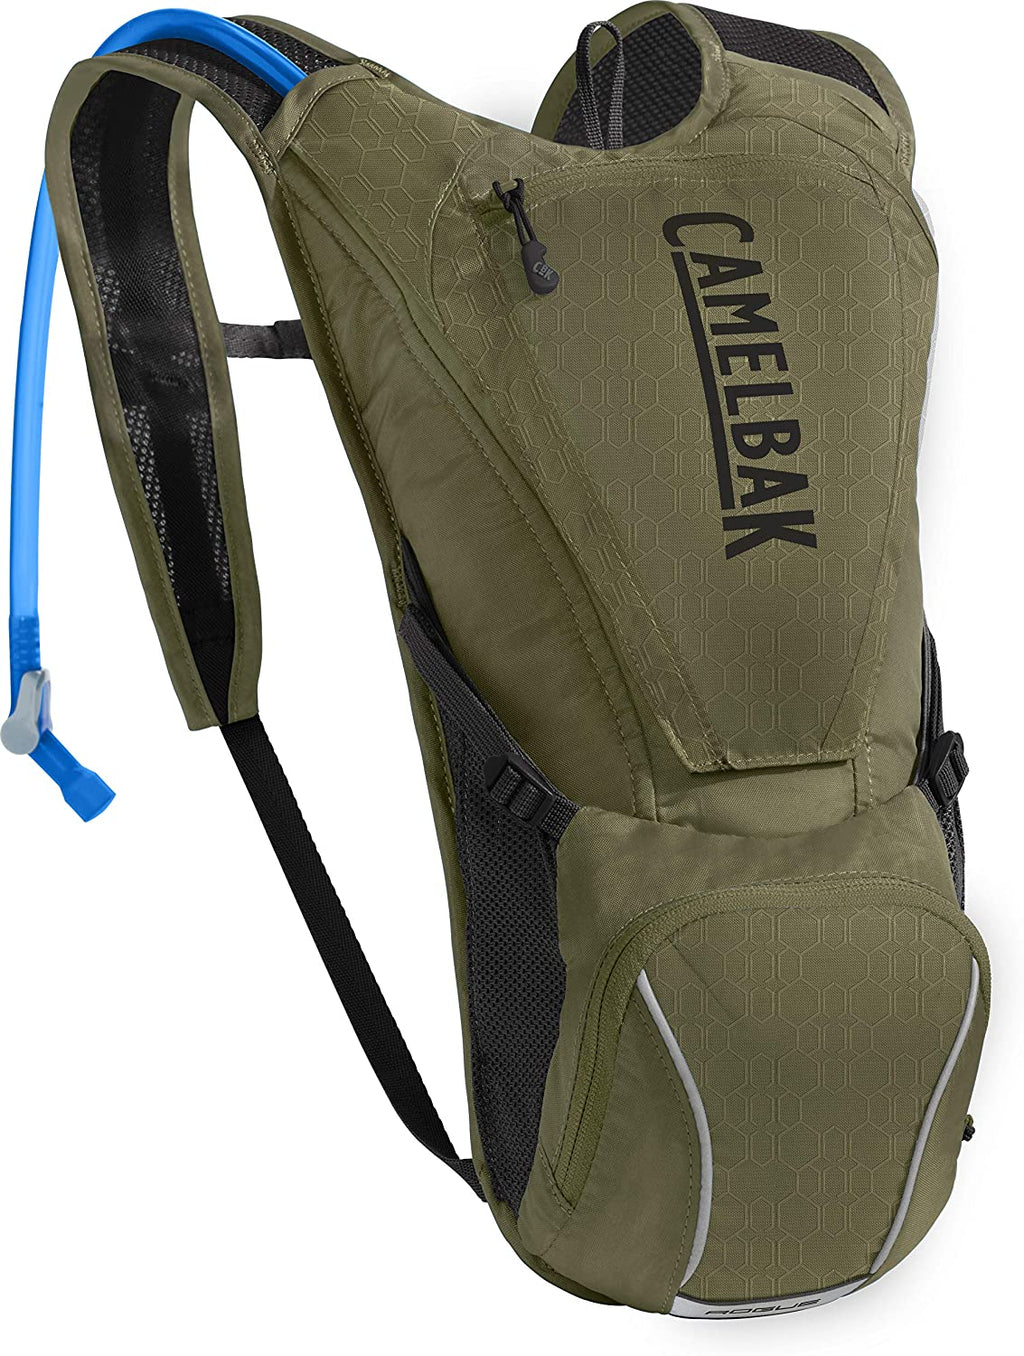 CamelBak Rogue 85oz Hydration Pack Burnt Olive/Black